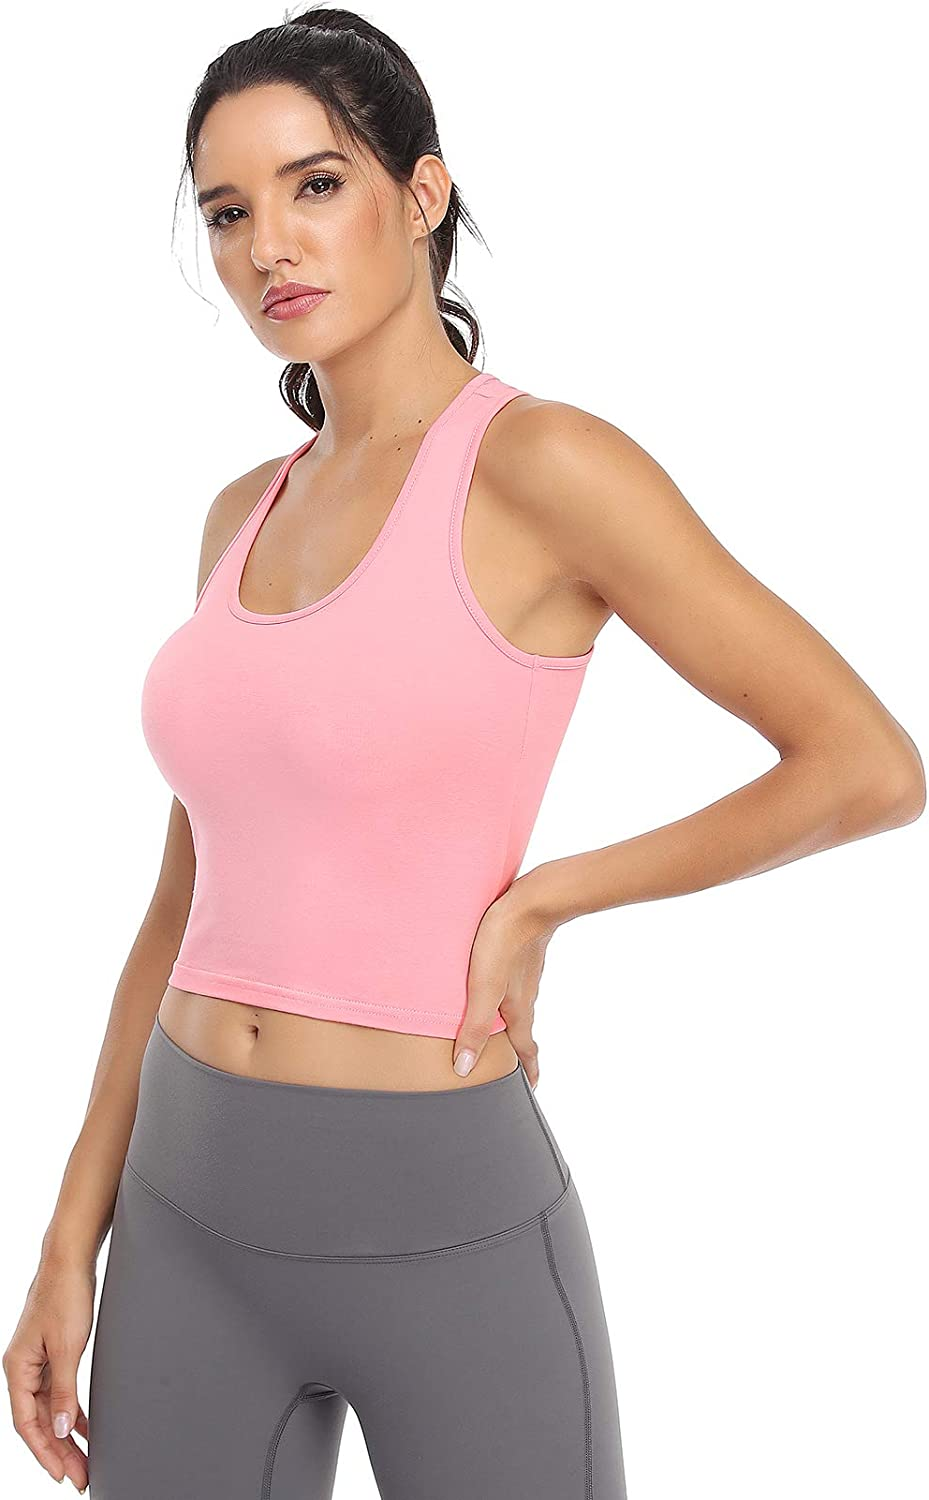 Sports Crop Tank Tops for Women Cropped Workout Tops Racerback Running Yoga Tanks Cotton Sleeveless Gym Shirts 3 Pack